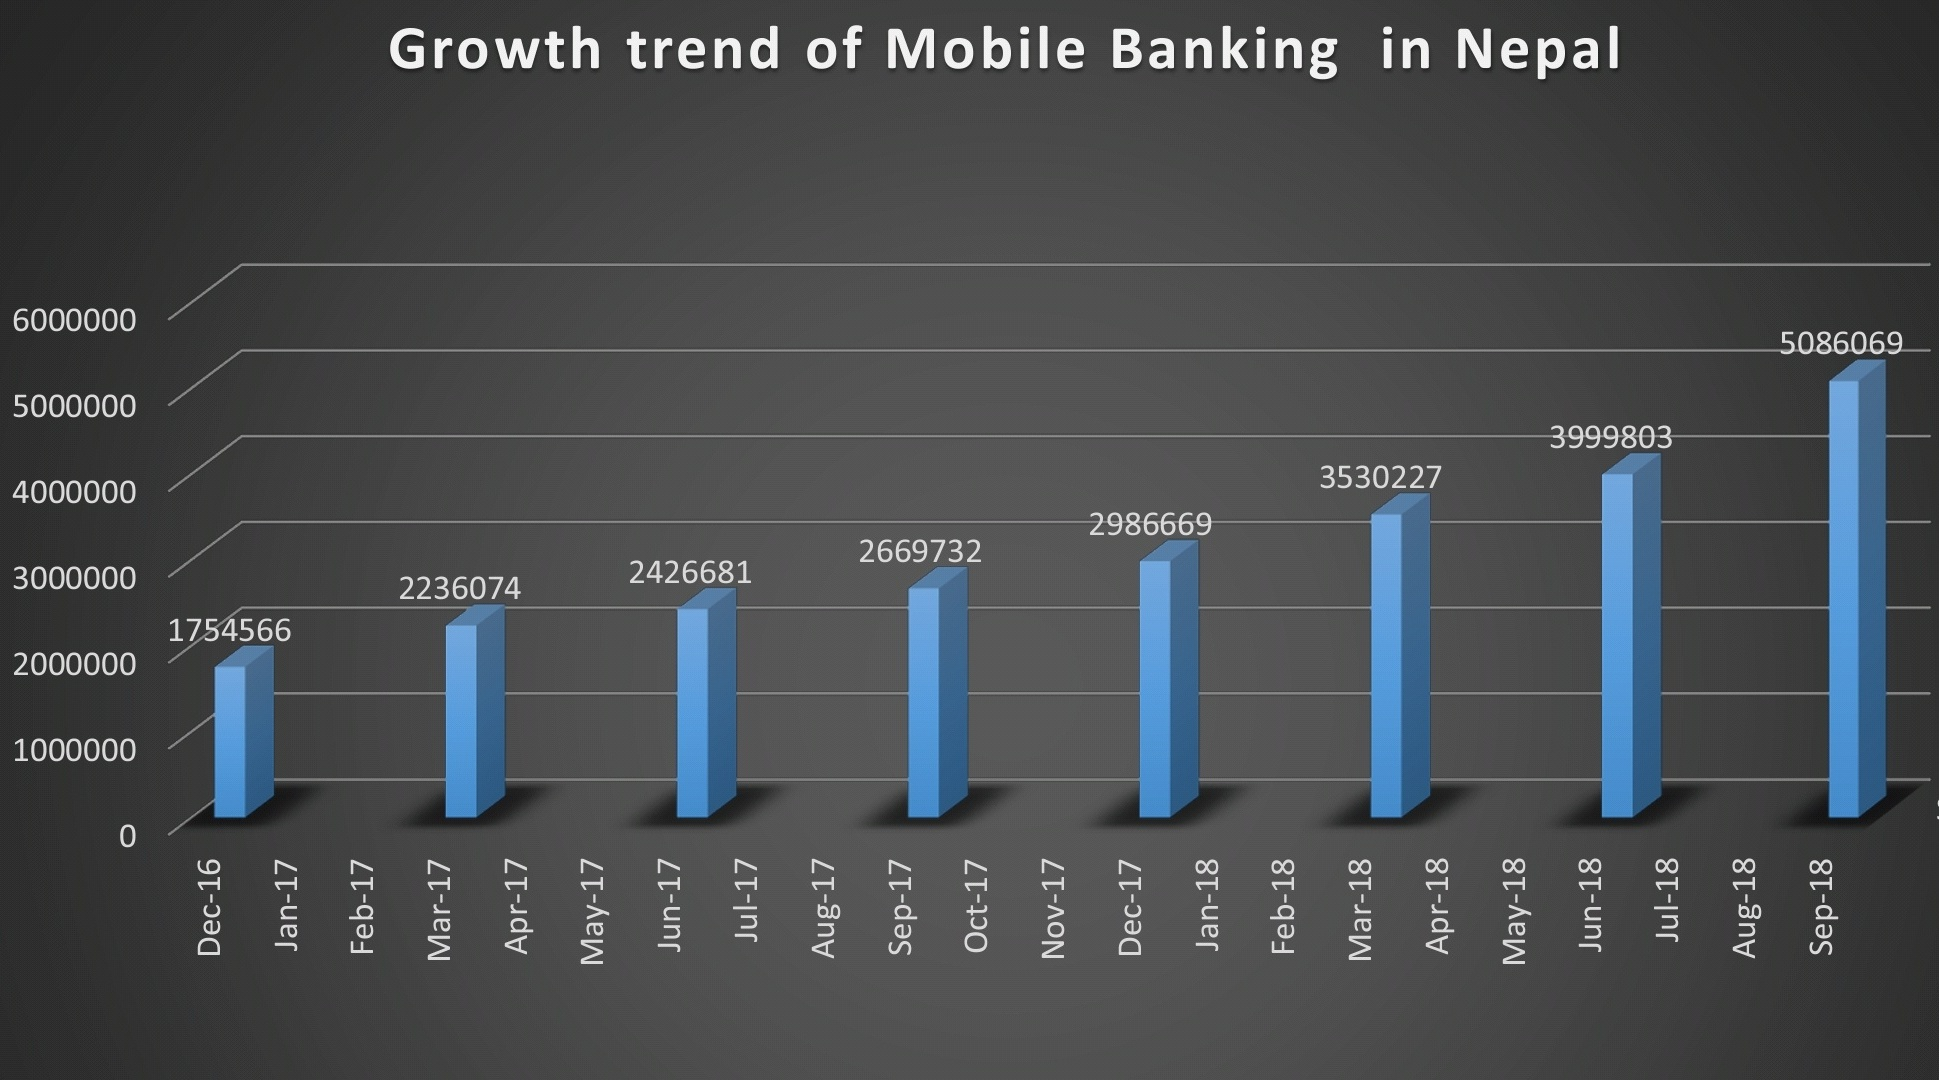 Growth trend of Mobile Banking in Nepal